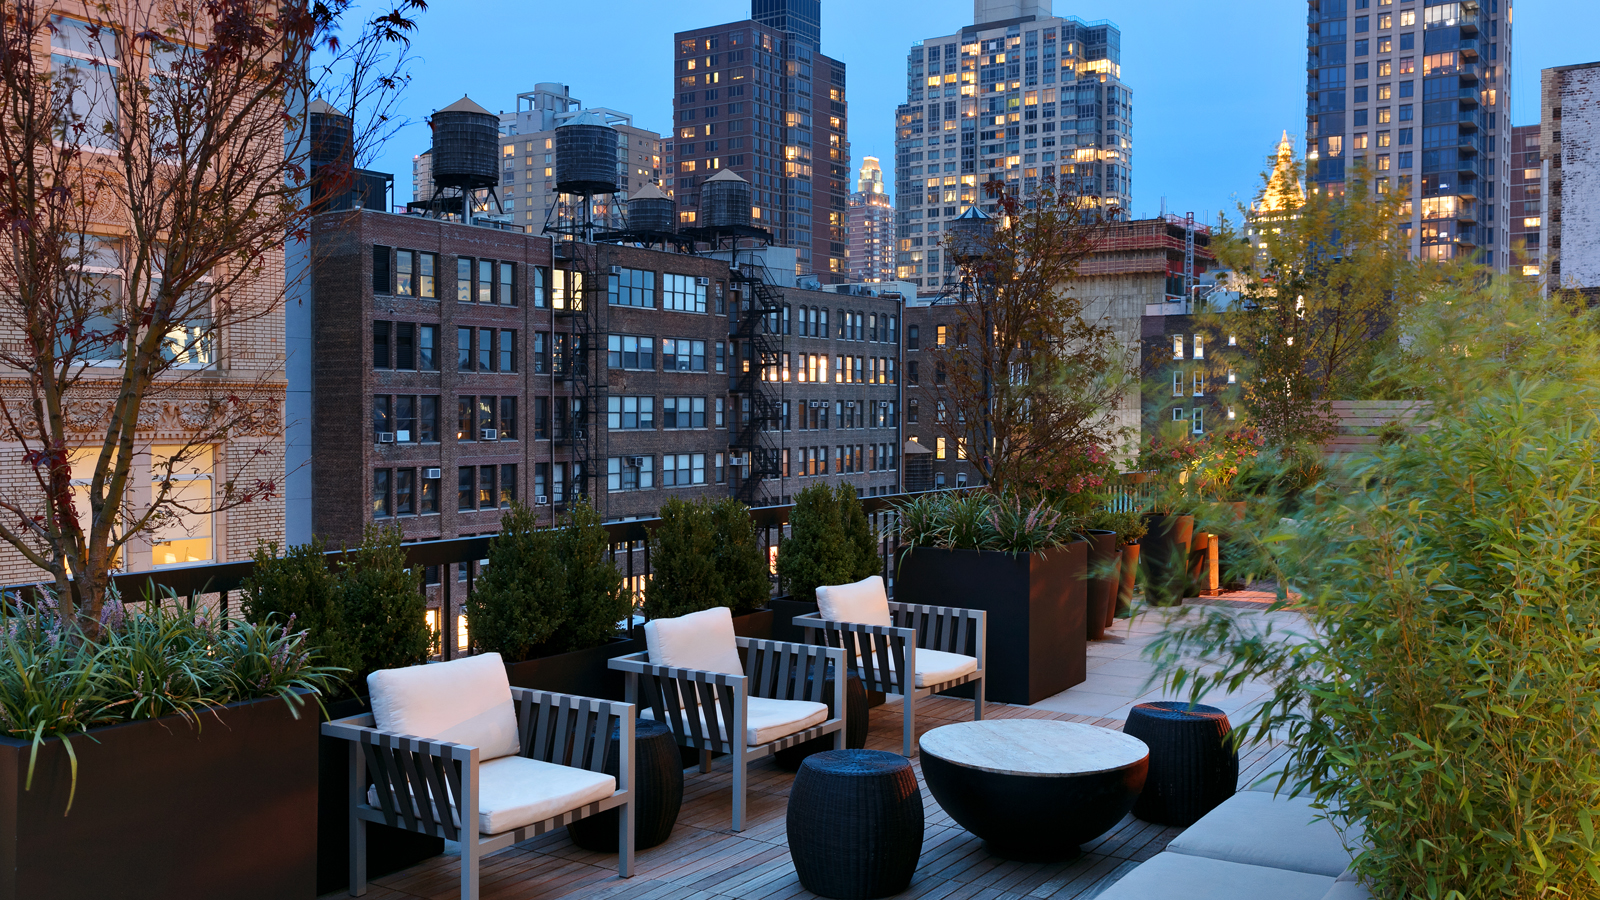 The Chelsea, 160 West 24th Street